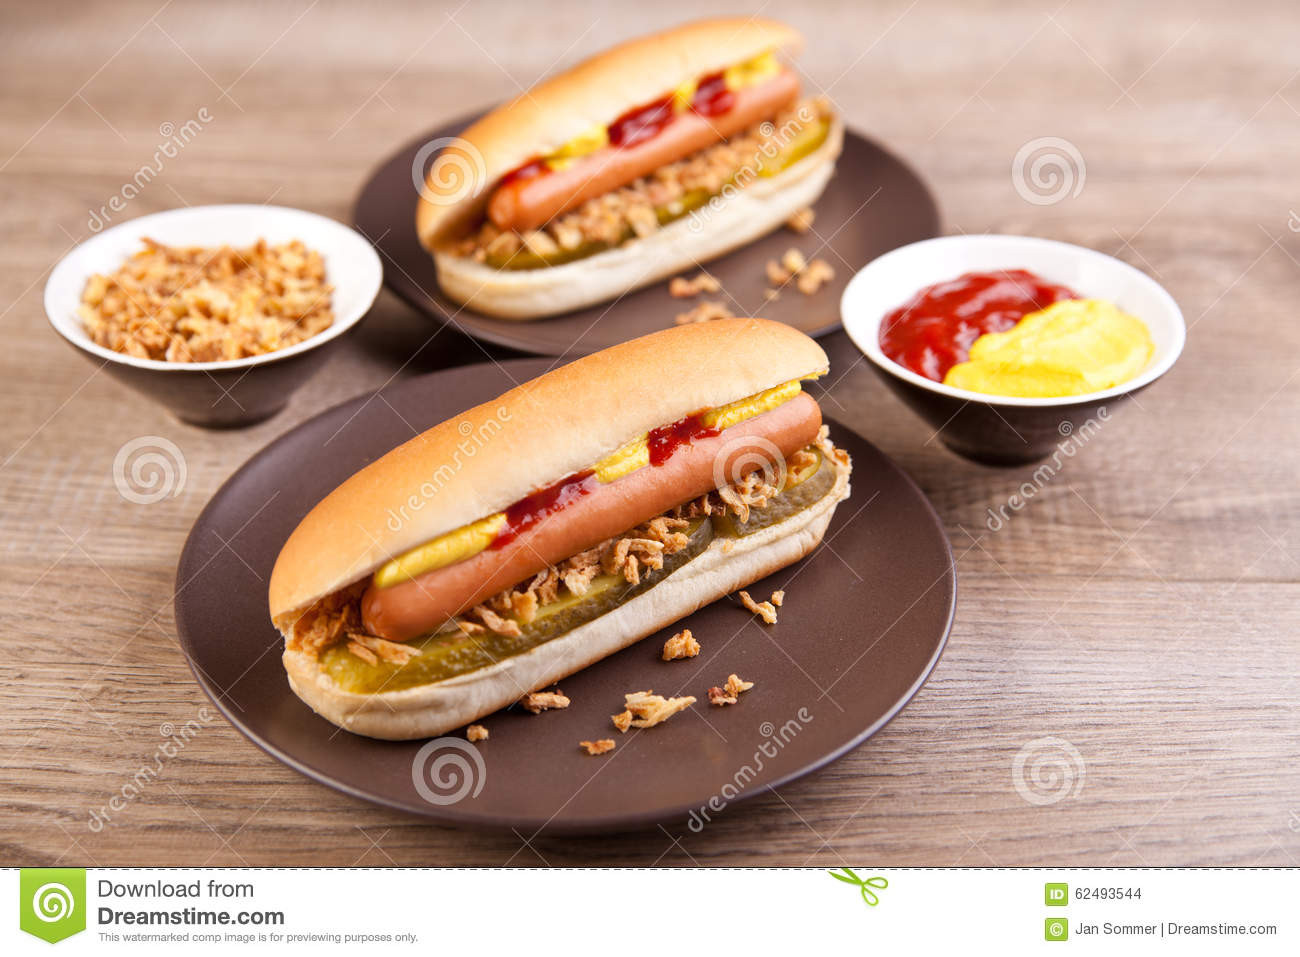 Two Hot Dogs  Two Hot Dogs With Gherkin And ions Stock Image